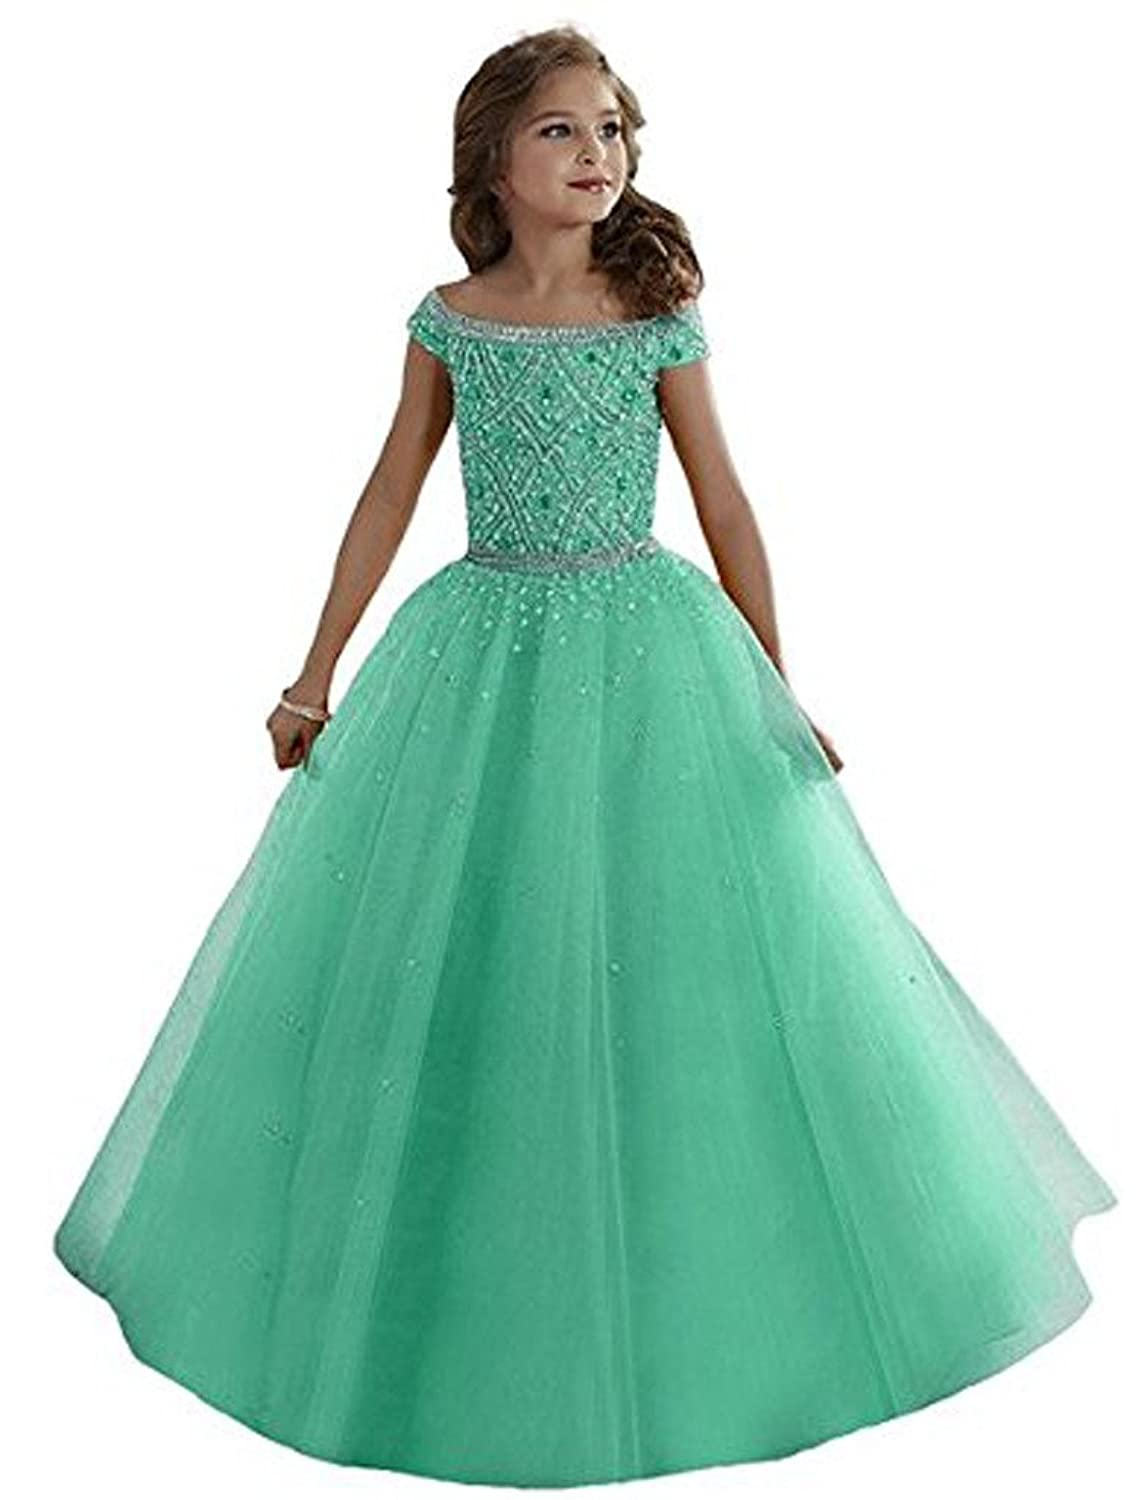 Amazon.com: YIPEISHA Little Girls Beades Full Length Ball Gowns ...